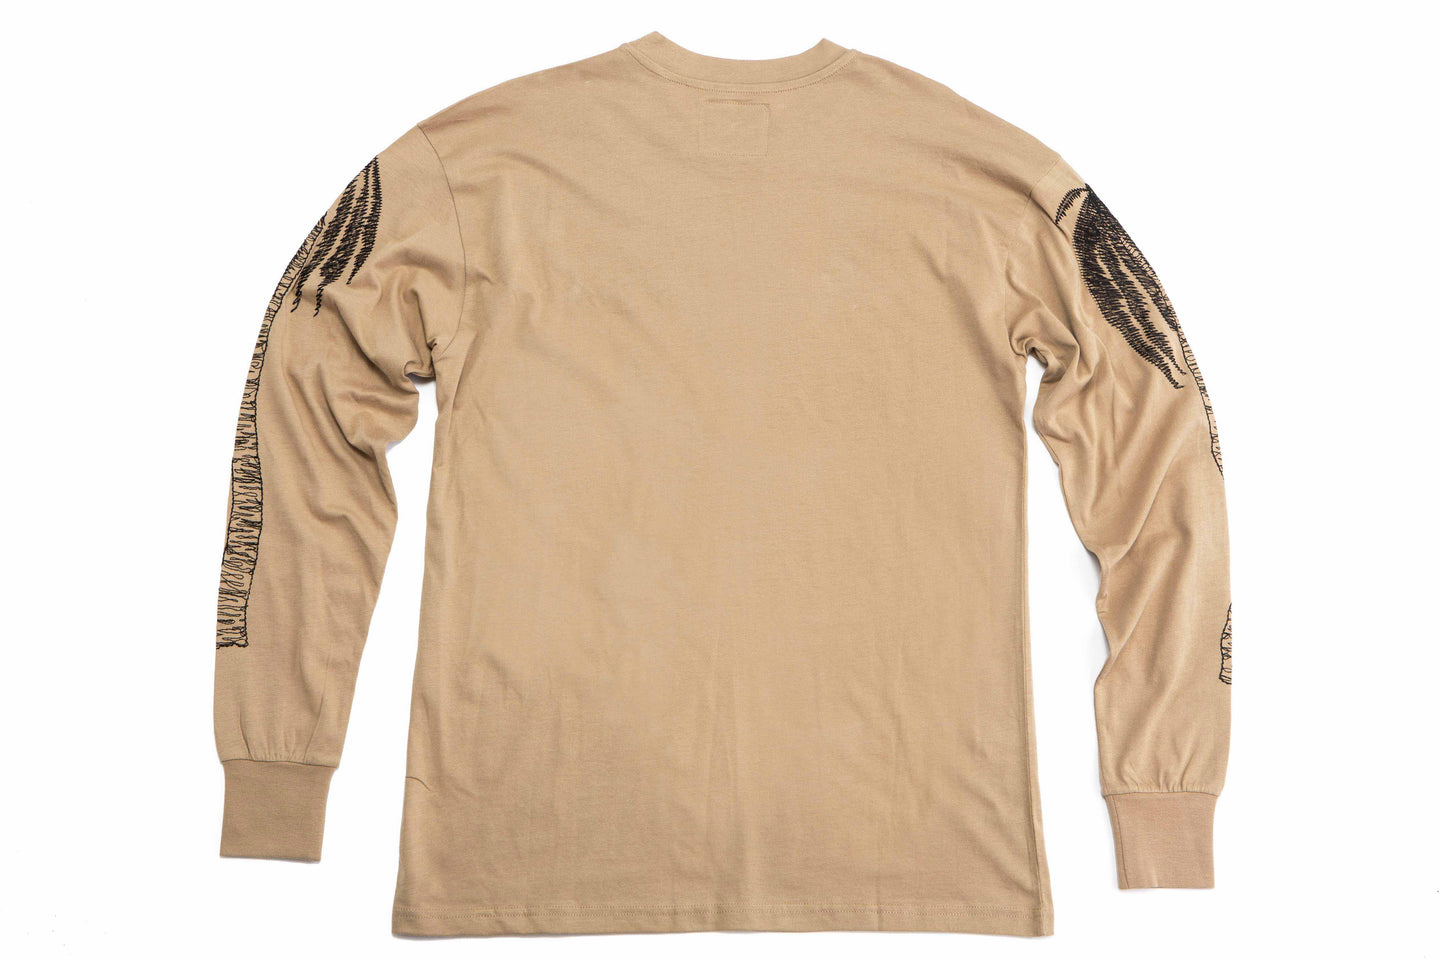 DEAD PALMS LONG SLEEVE T